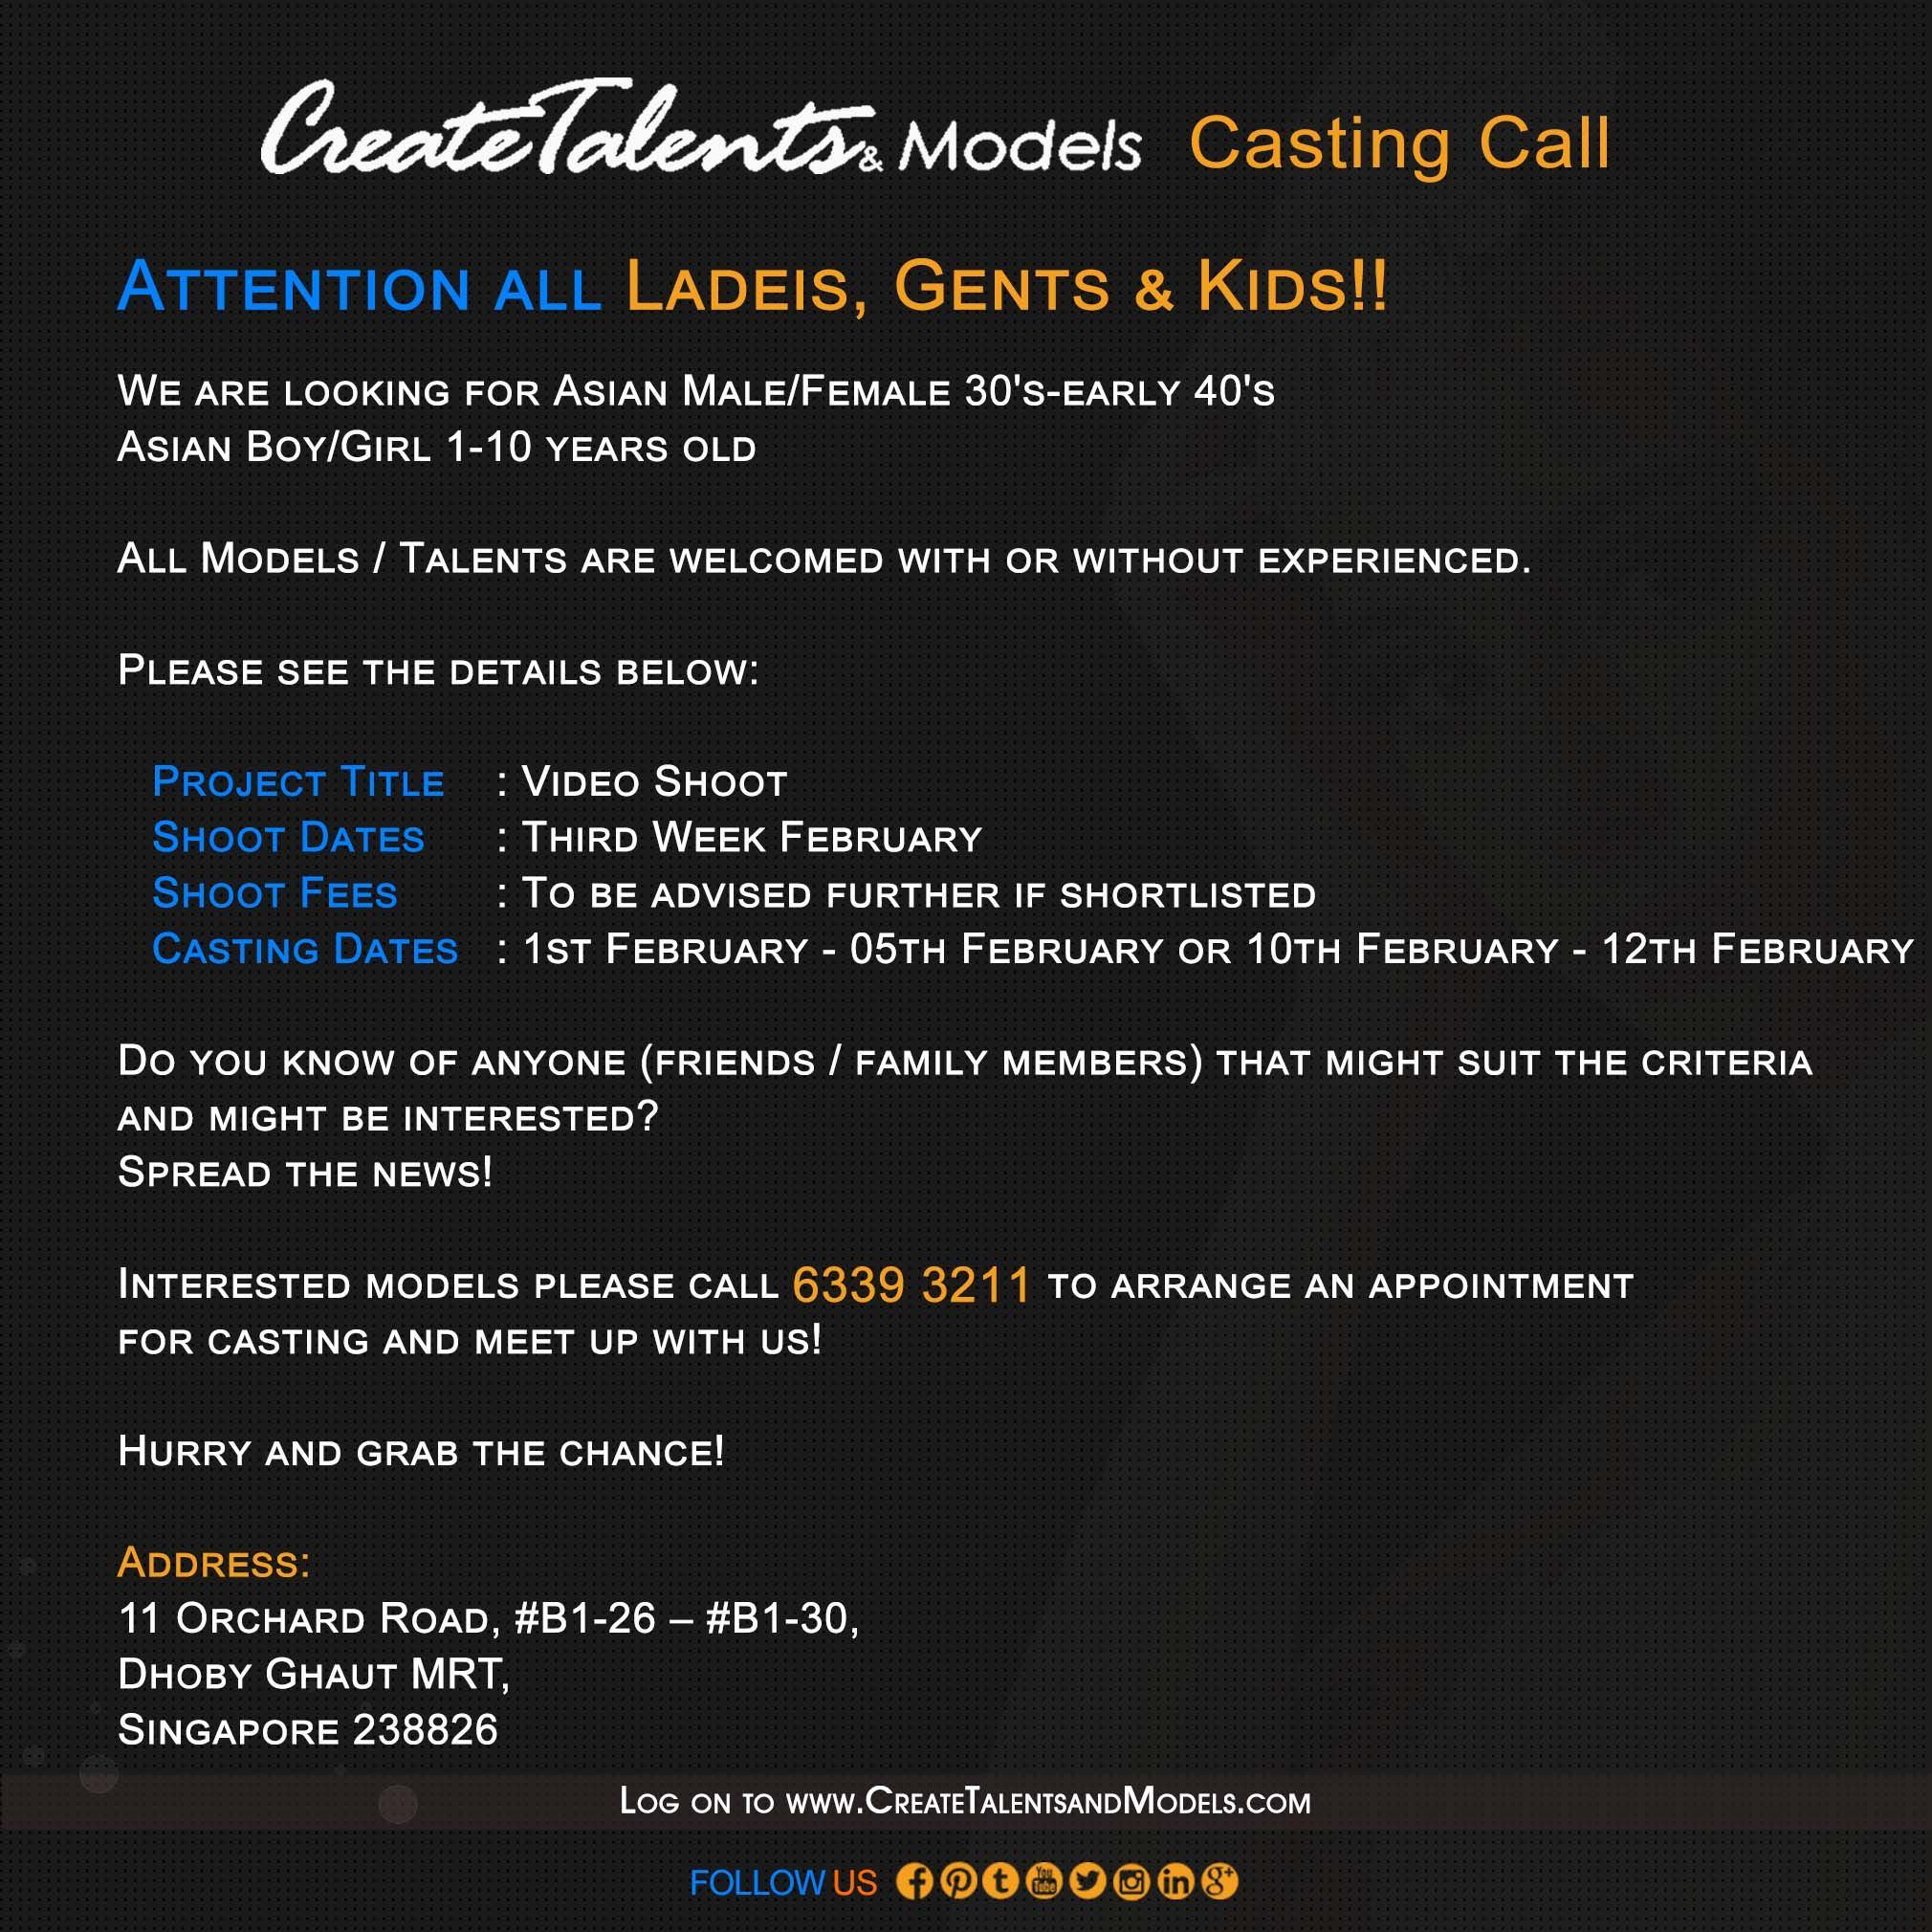 We are looking for Asian Male/Female 30's-early 40's Asian Boy/Girl 1-10 years old for Video Shoot